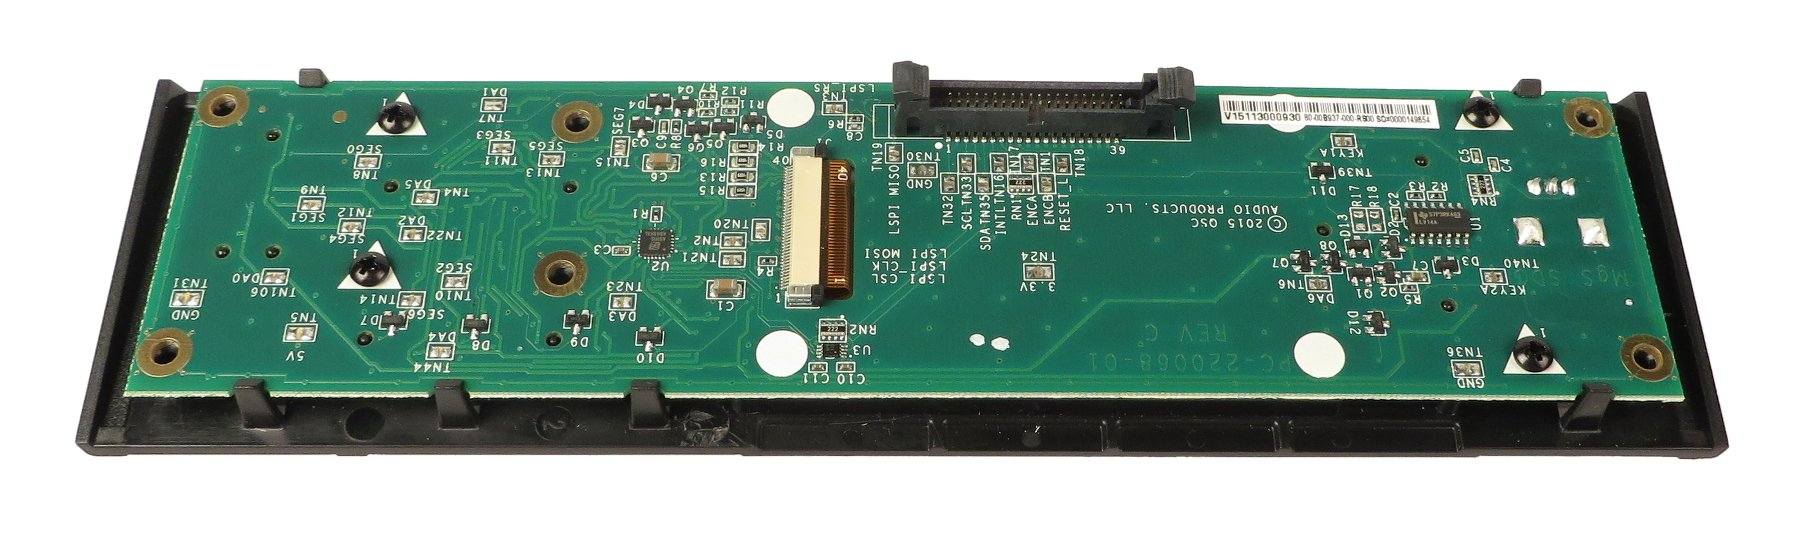 QSC WP-220014-01 Dispaly PCB for PLD4 WP-220014-01